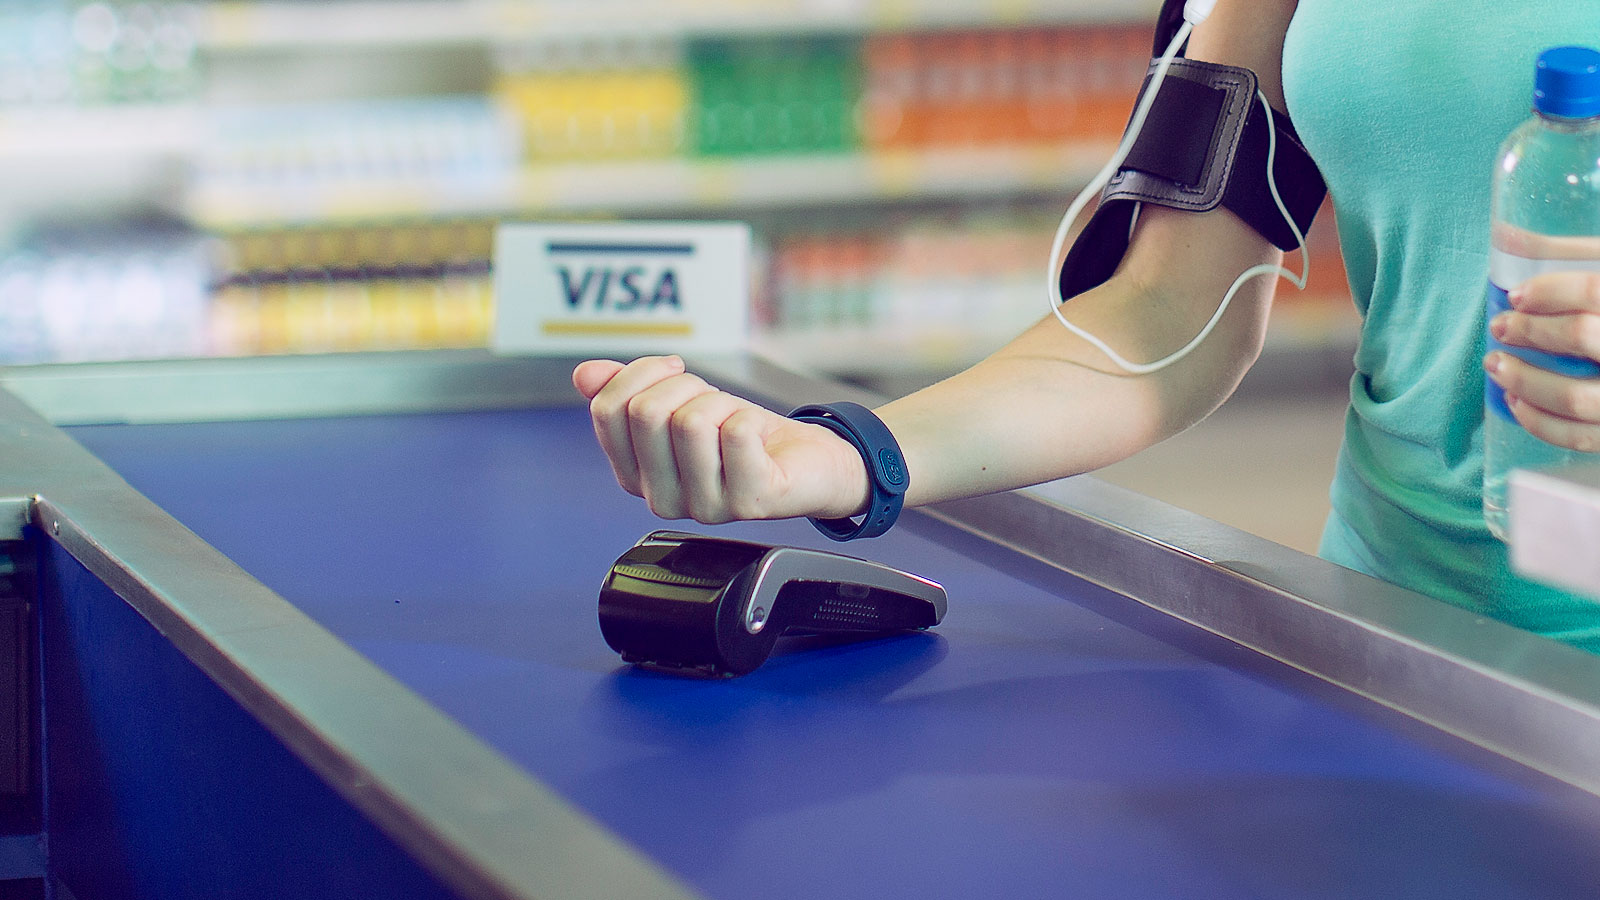 Visa - Pagos digitales